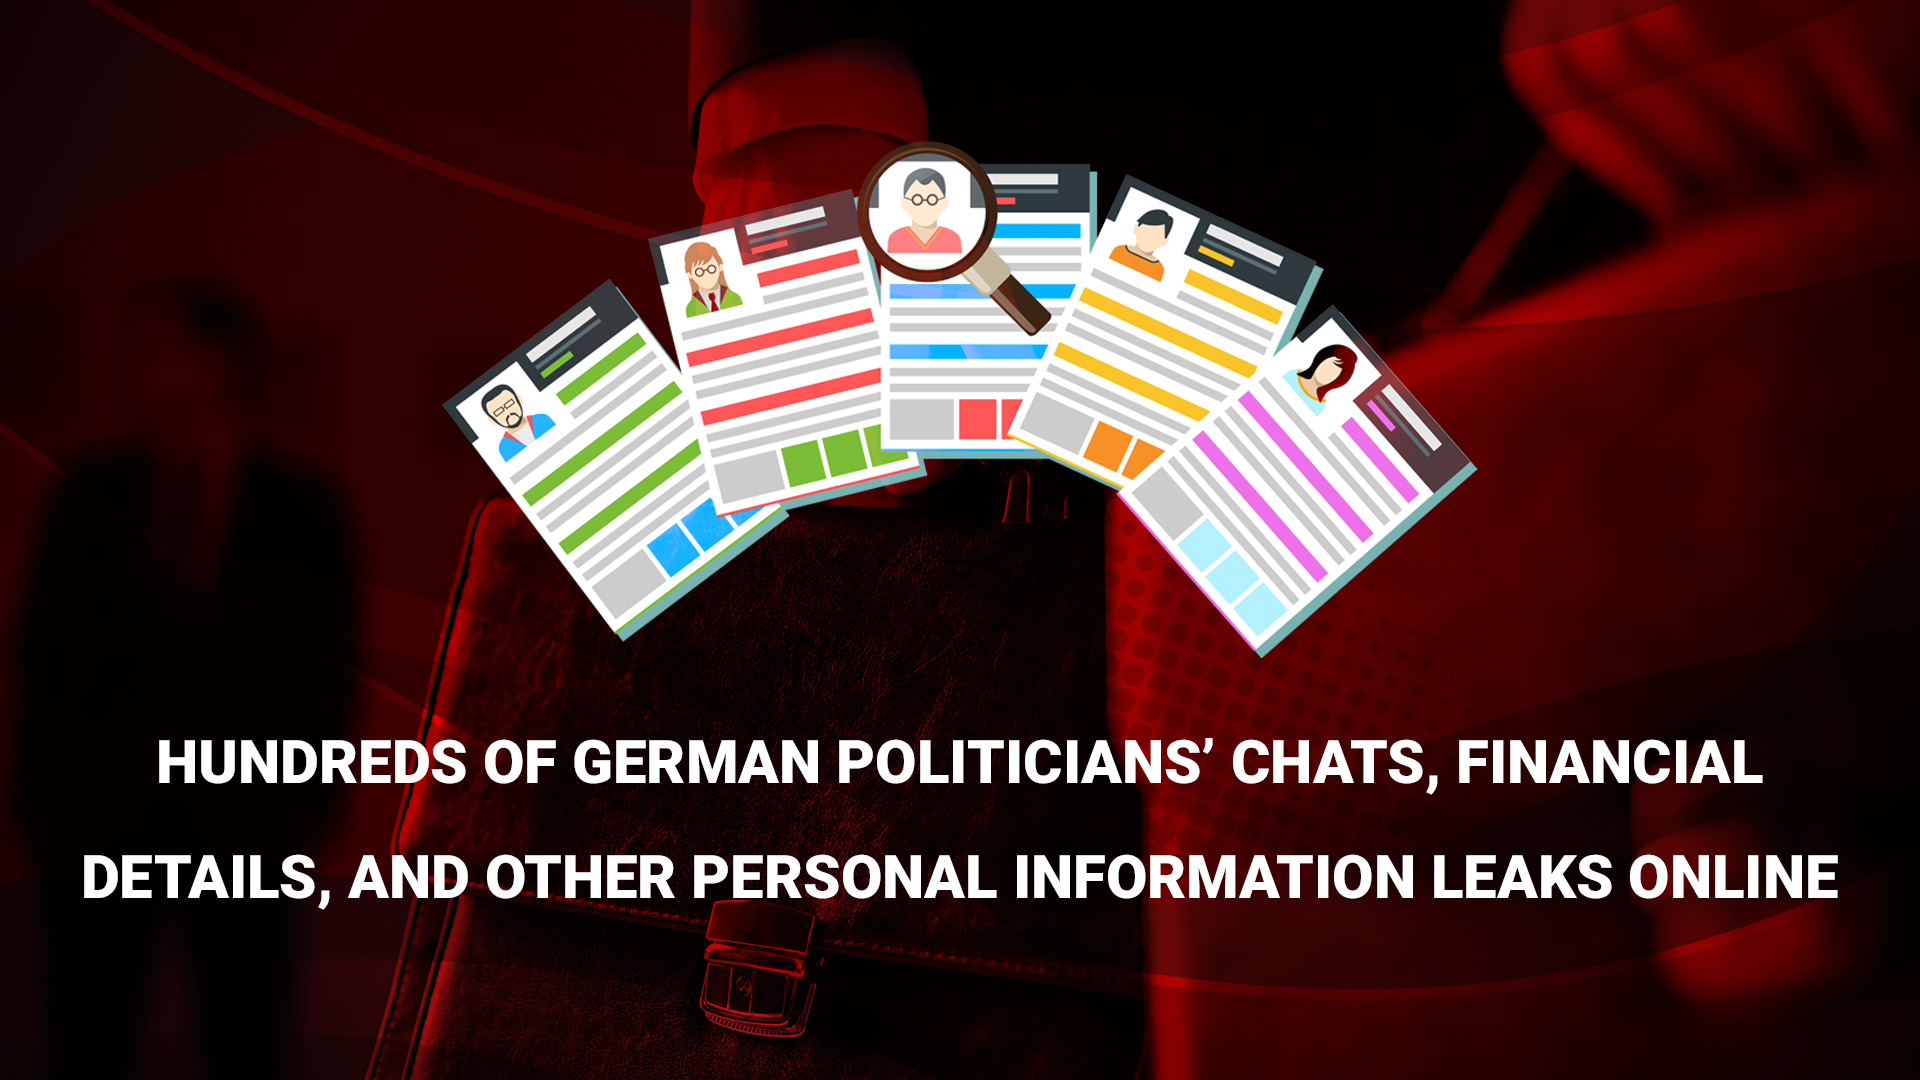 Hundreds of German politicians' chats, financial details, and other personal information leaks online